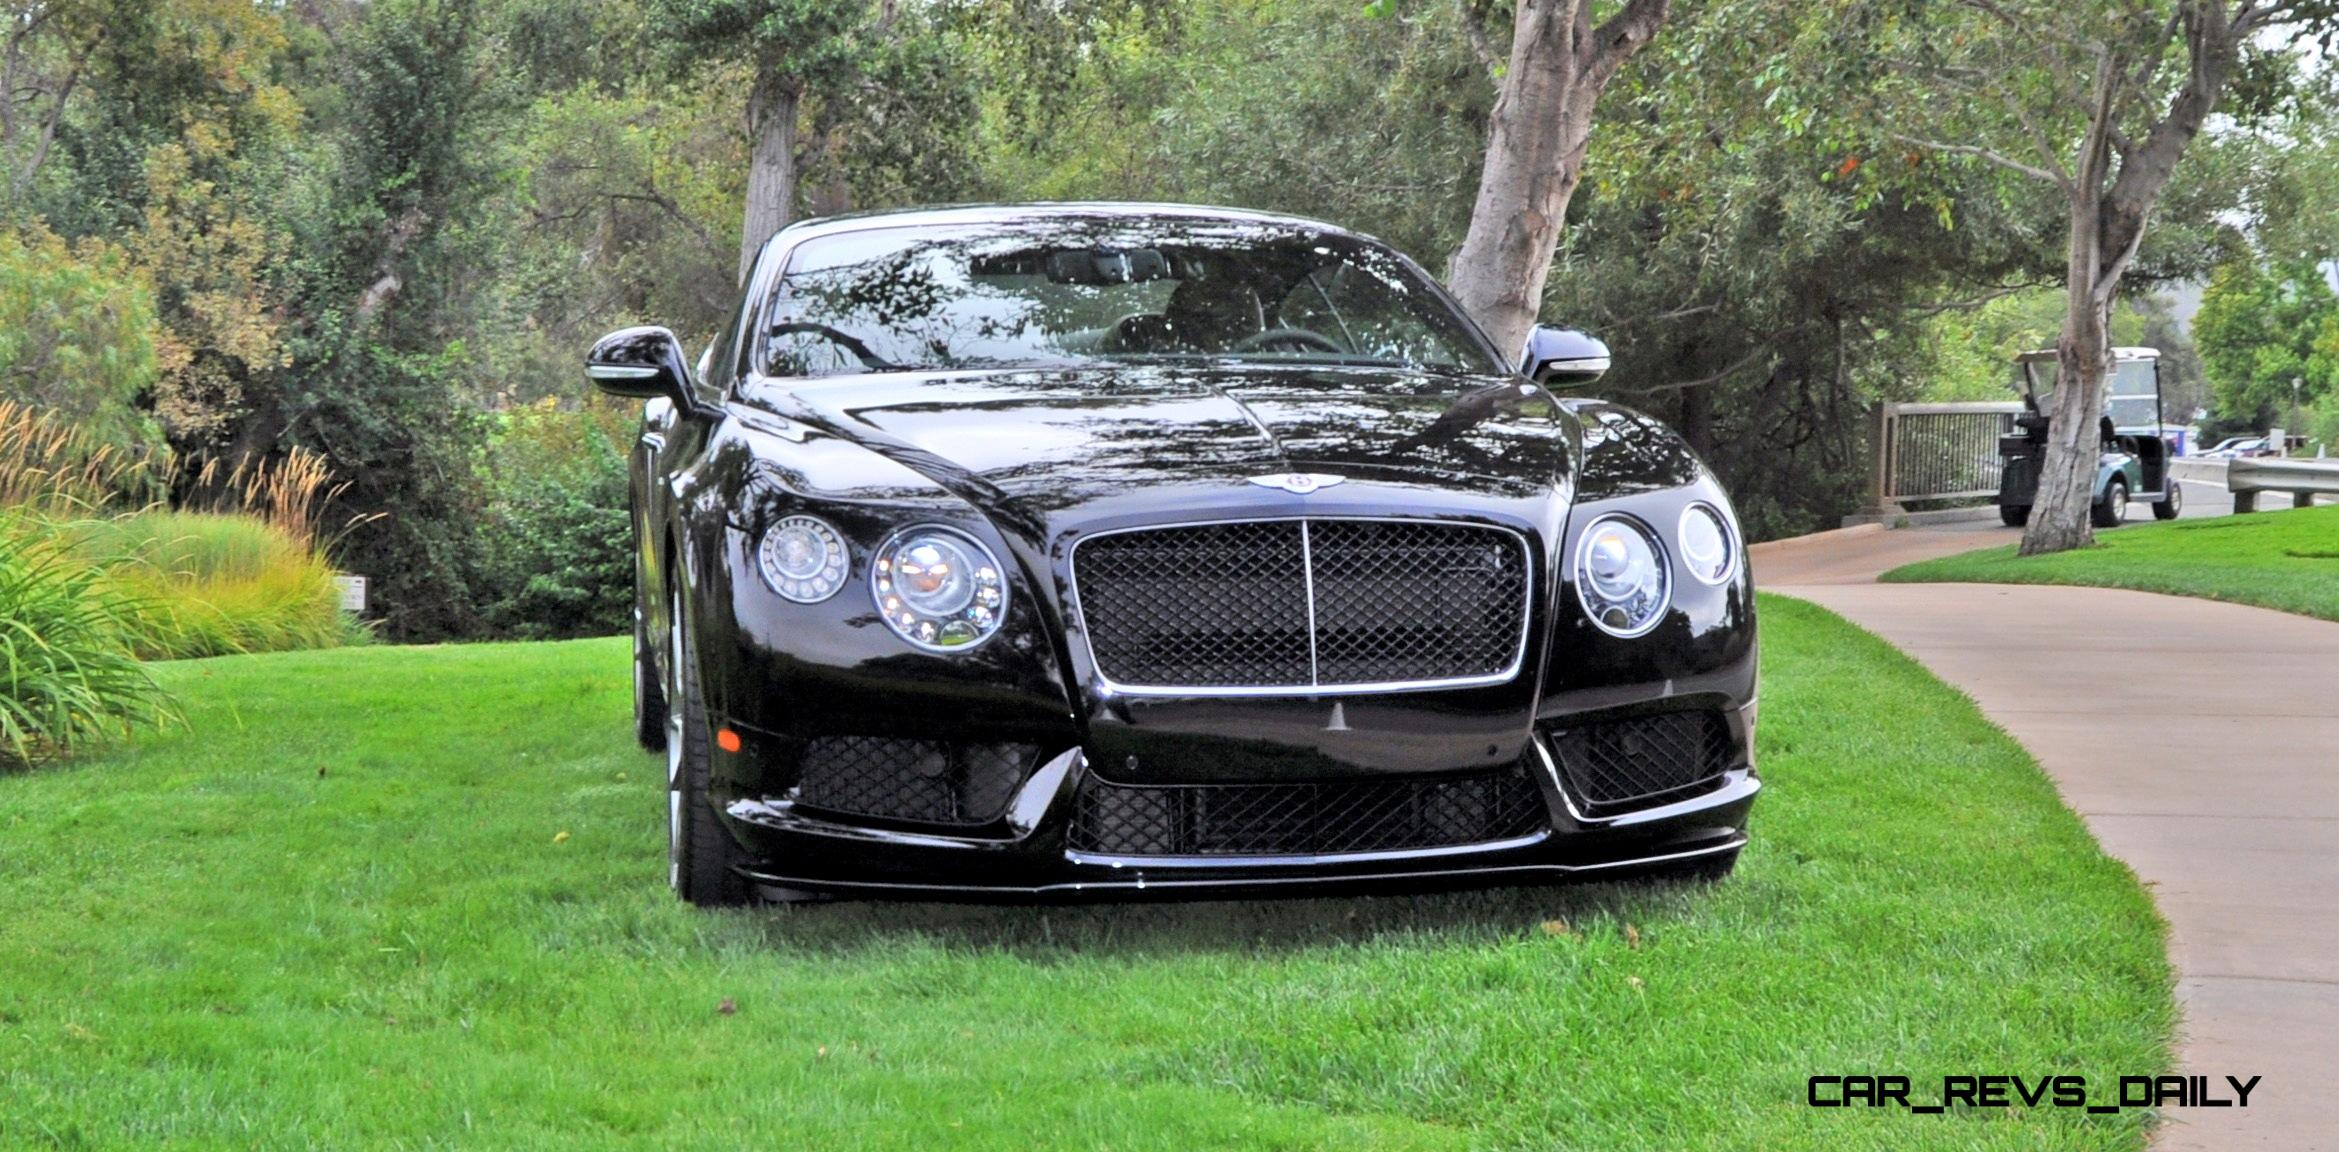 Car Revs Daily.com 2015 Bentley Continental GT V8S Is Stunning In Black  Crystal Paintwork 4